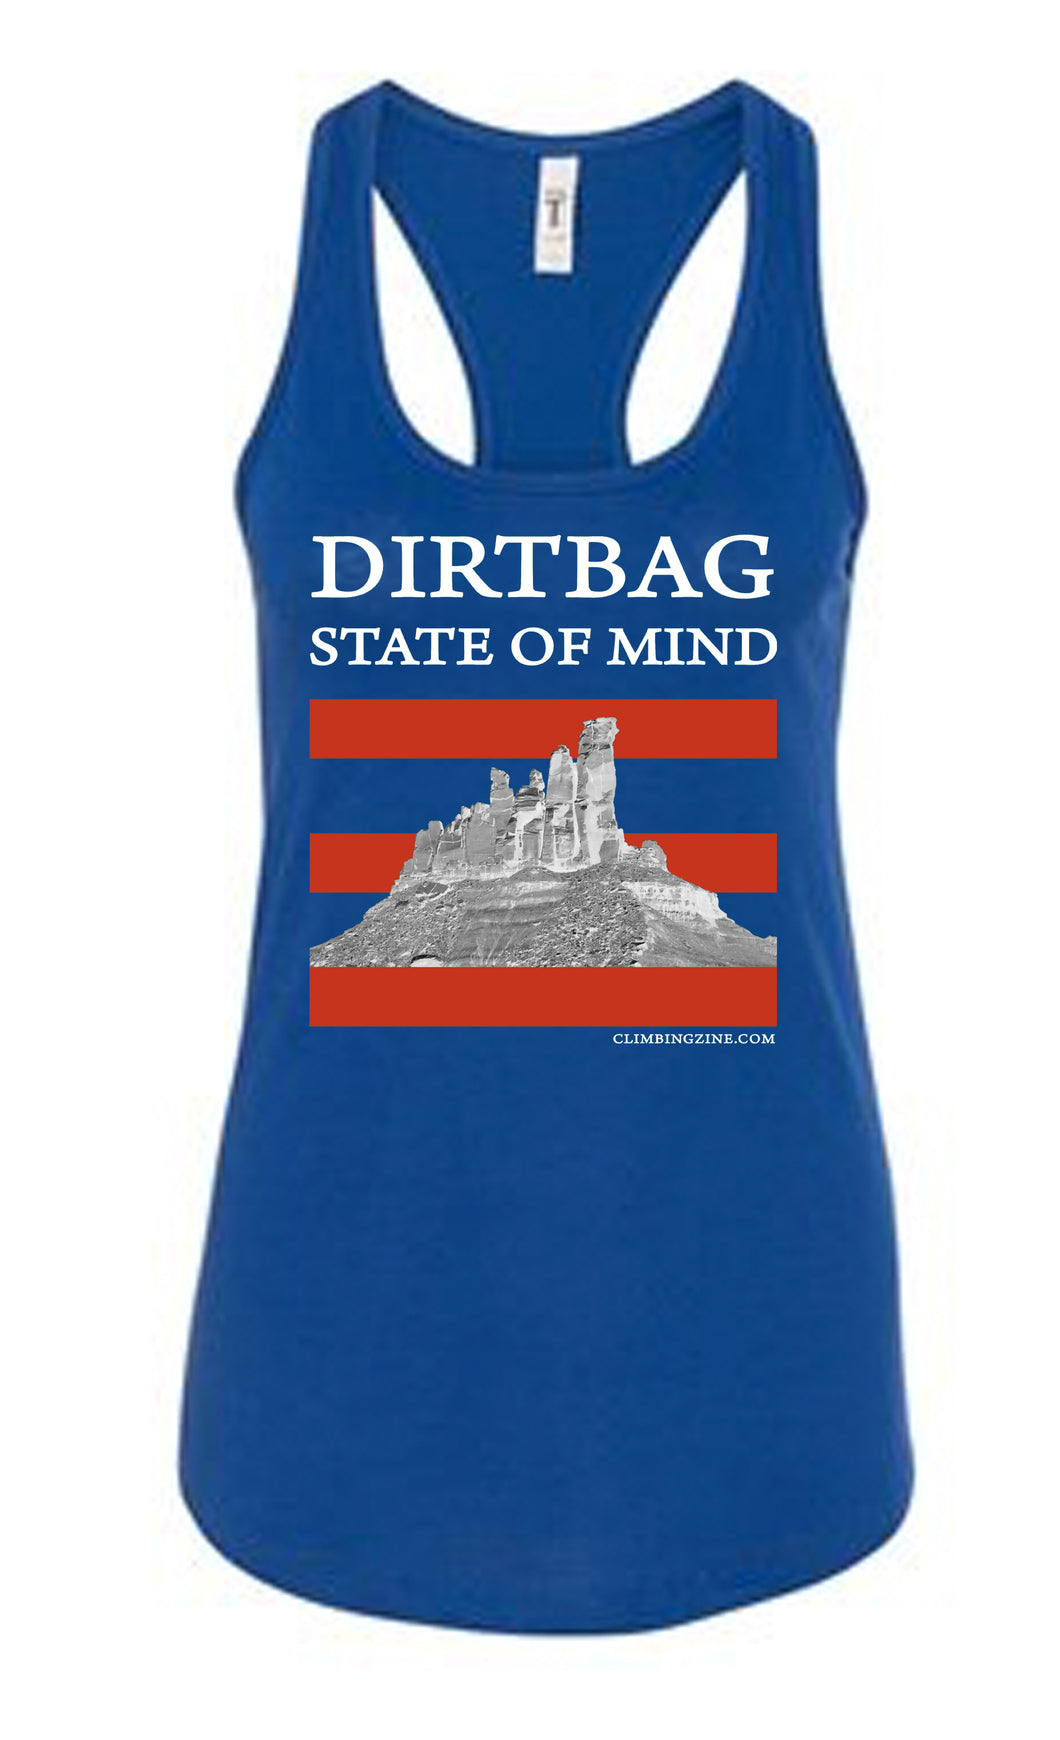 *SALE* Dirtbag State of Mind - racerback tank top - Blue